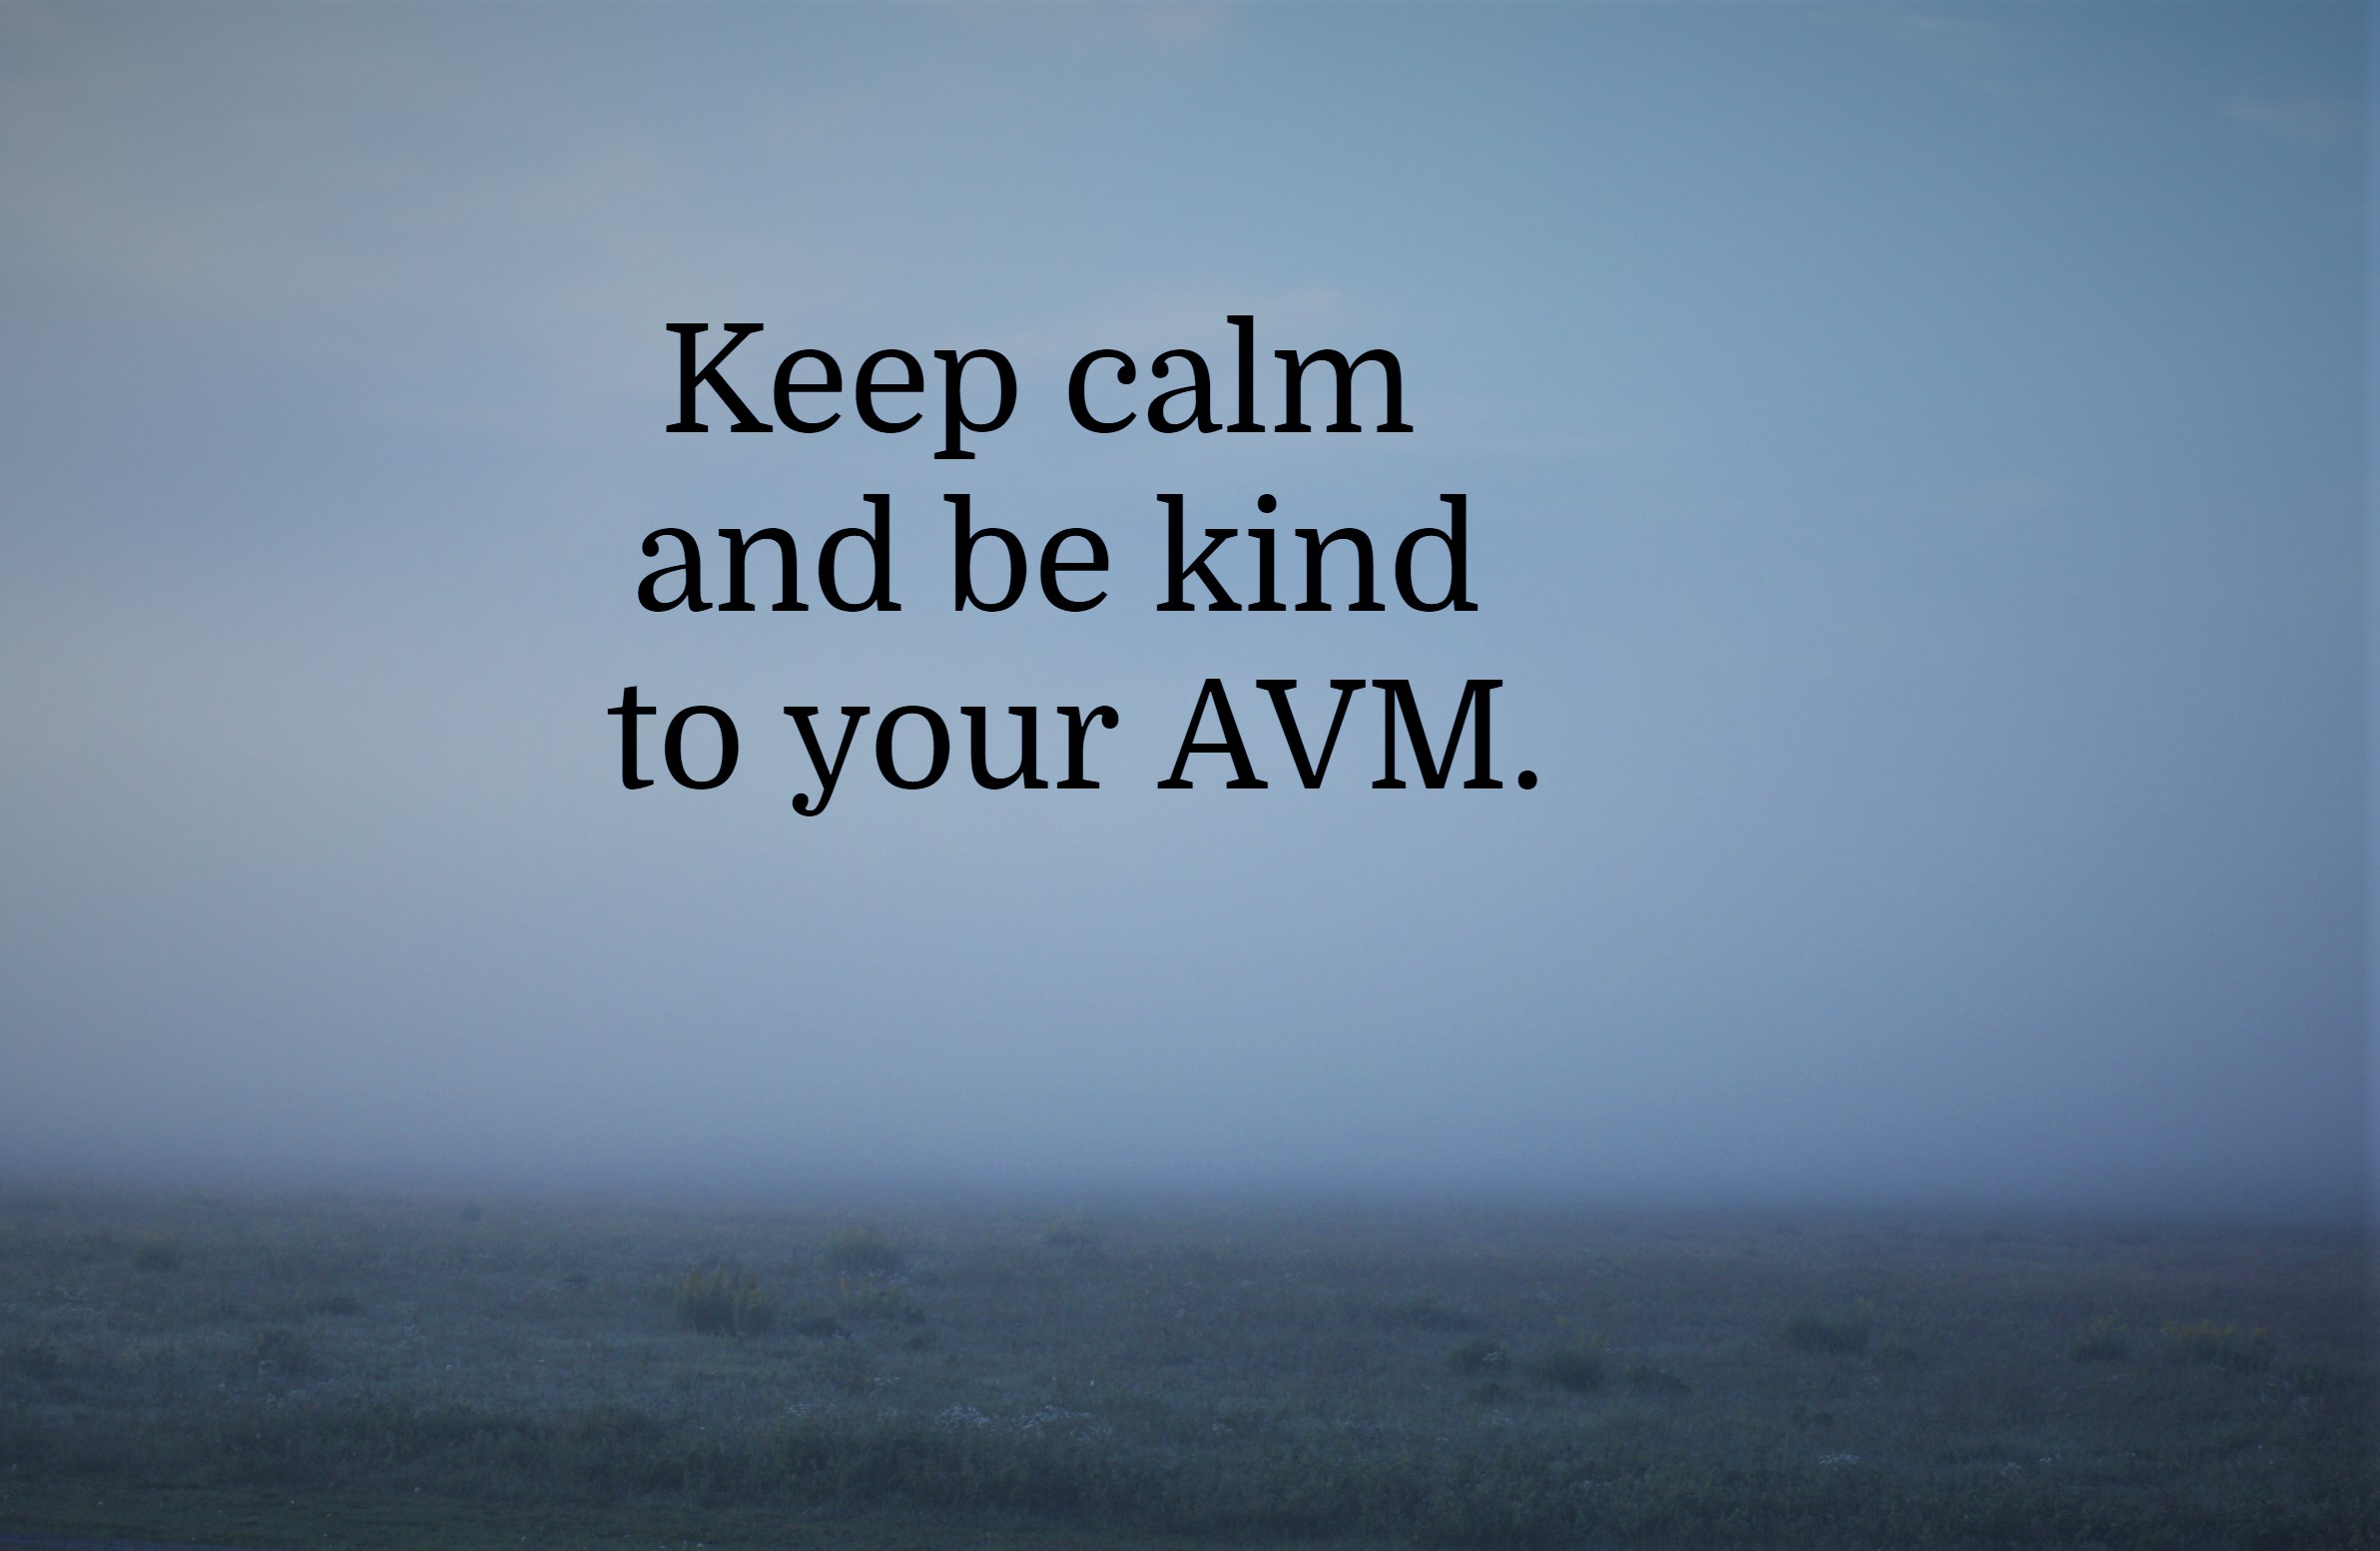 Keep calm and be kind to your AVM